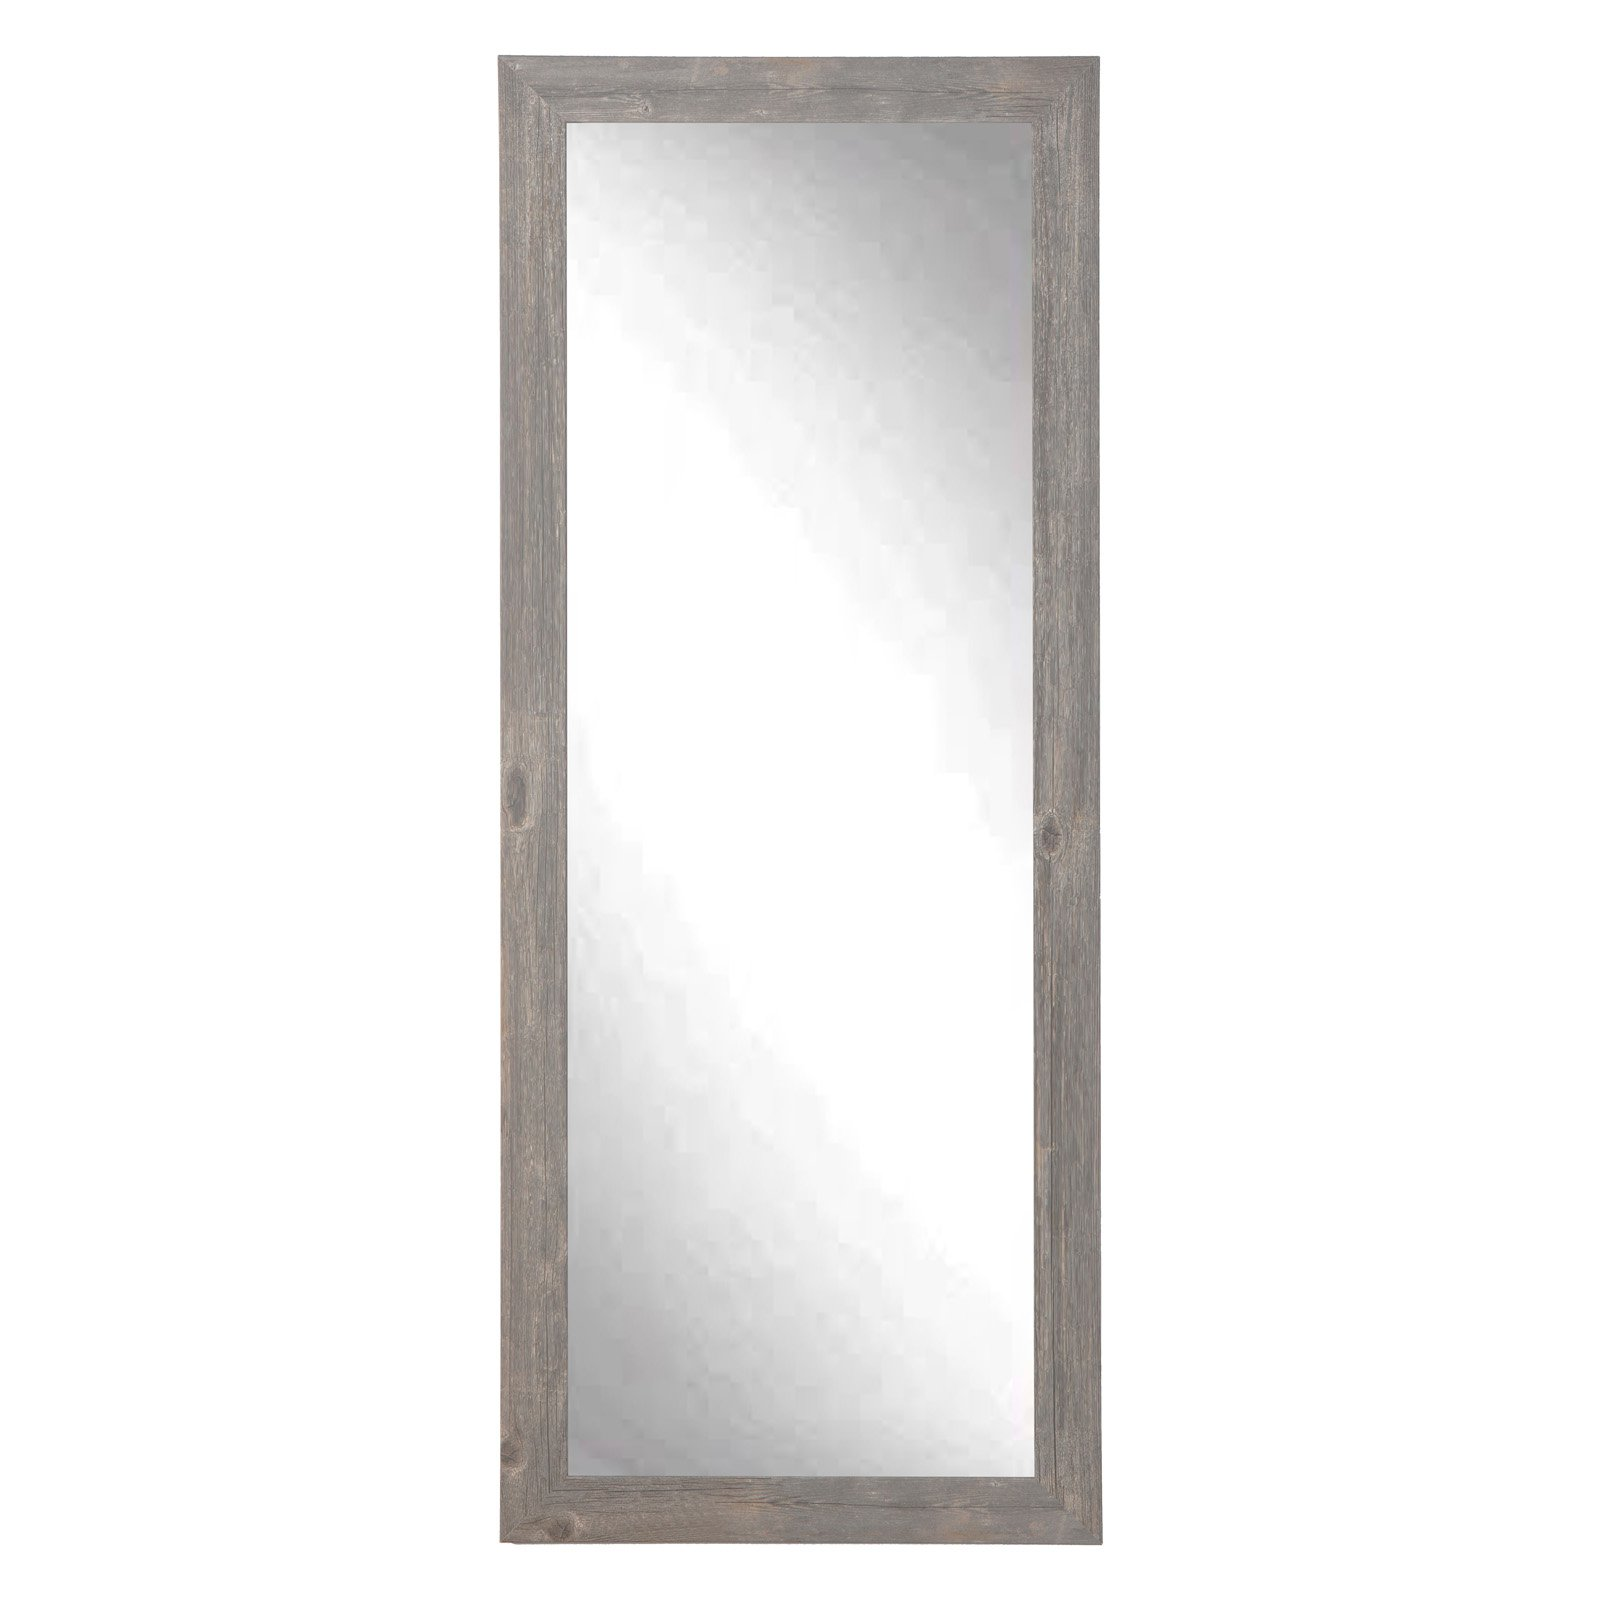 BrandtWorks Urban Frontier Barnwood Leaning Floor Mirror by American Made